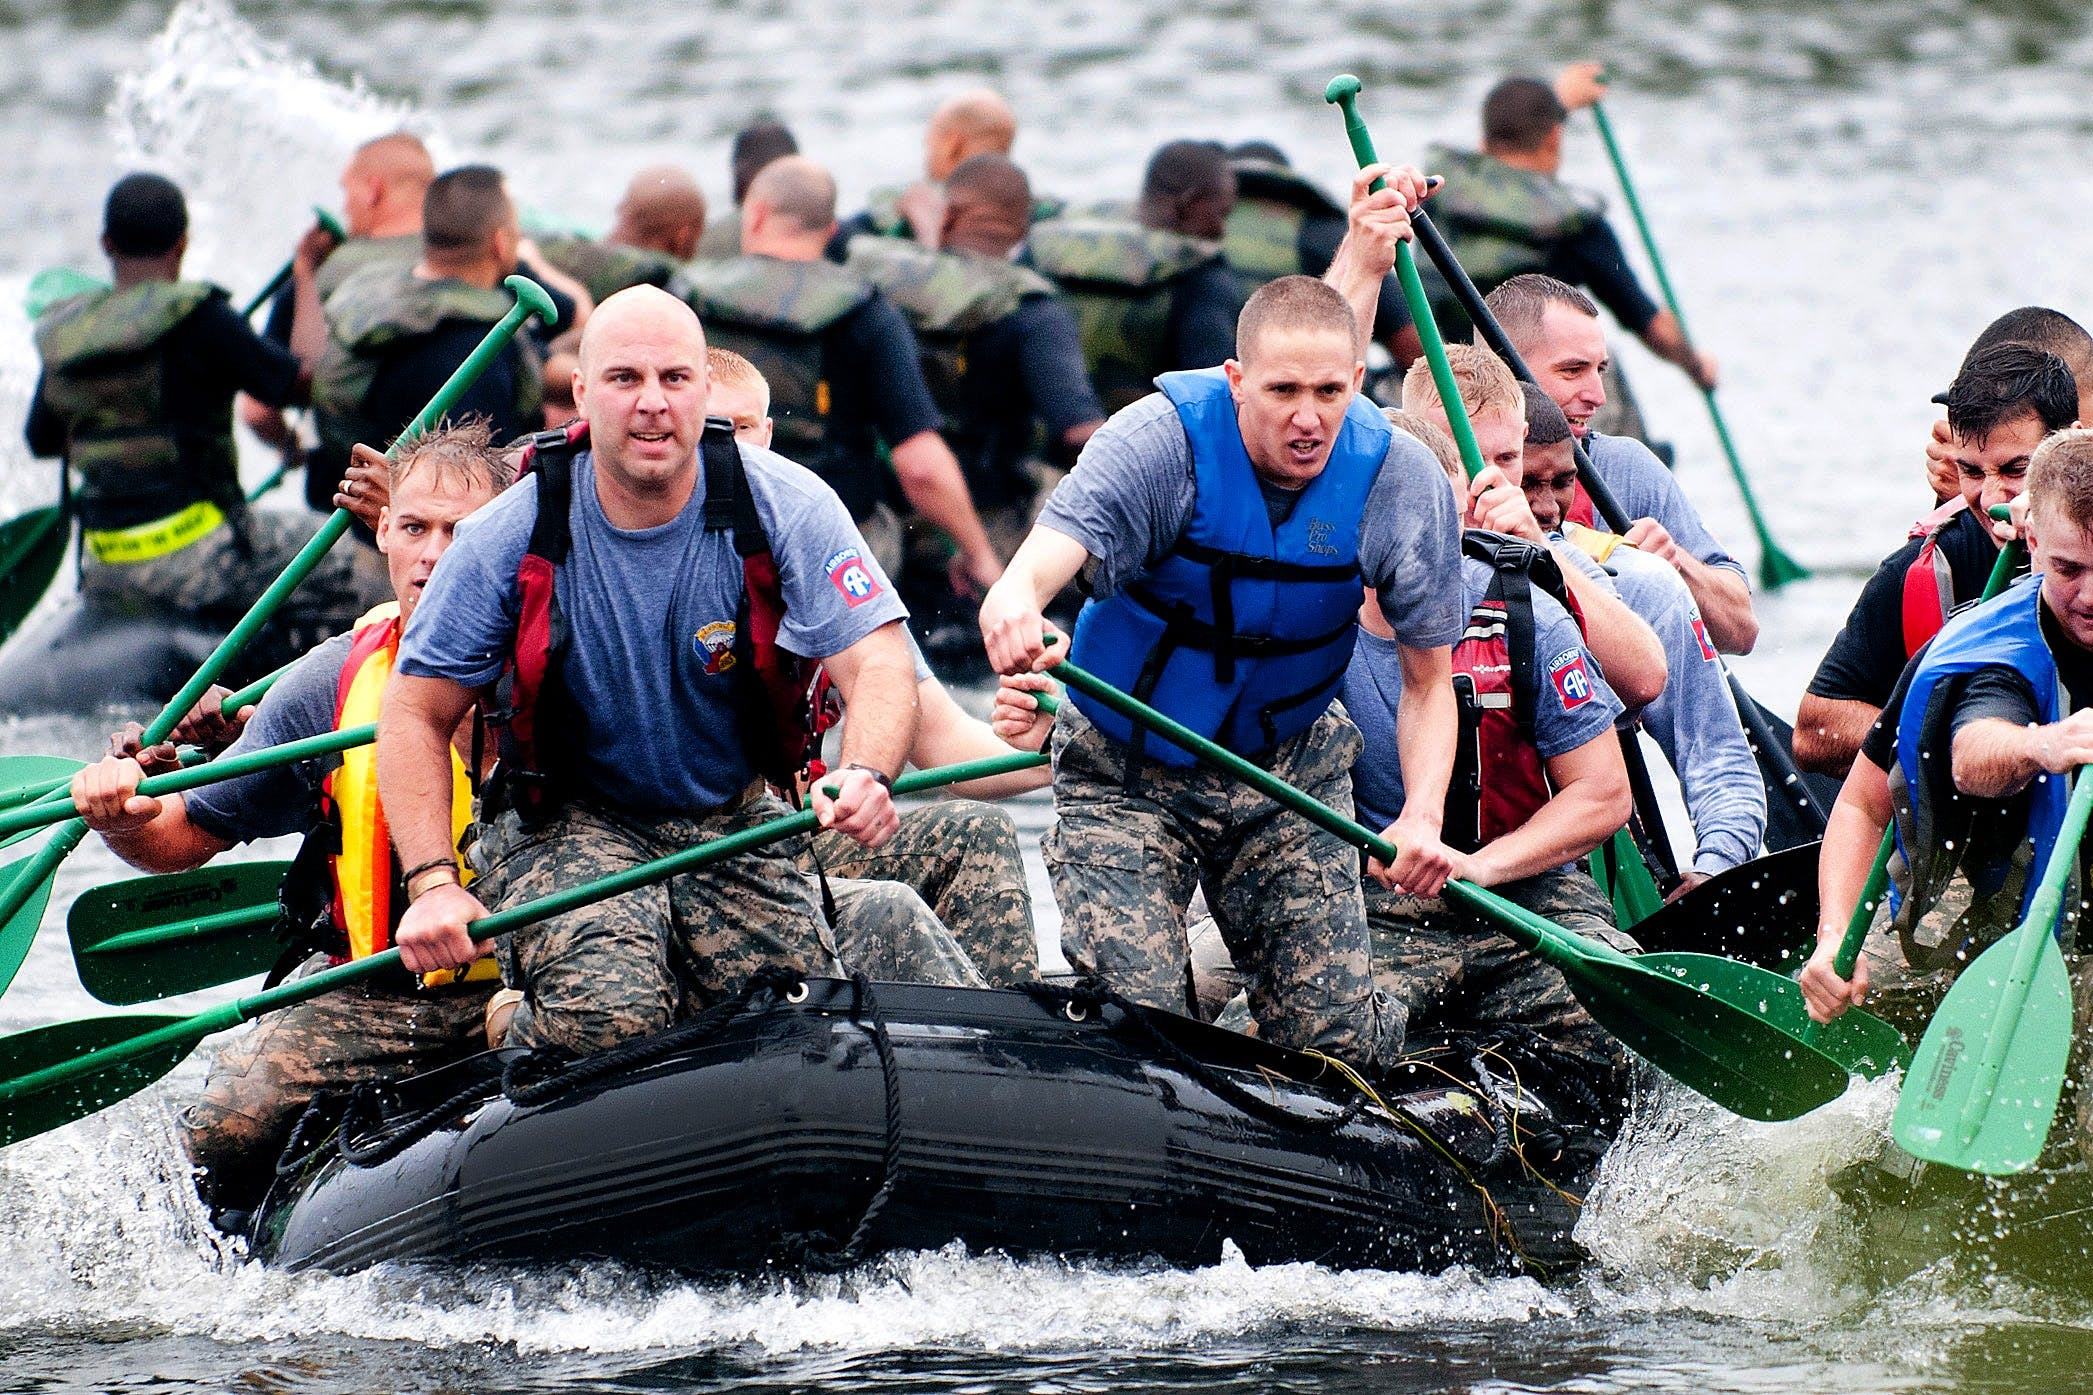 Men Paddling in Inflatable Raft Boat during Daytime